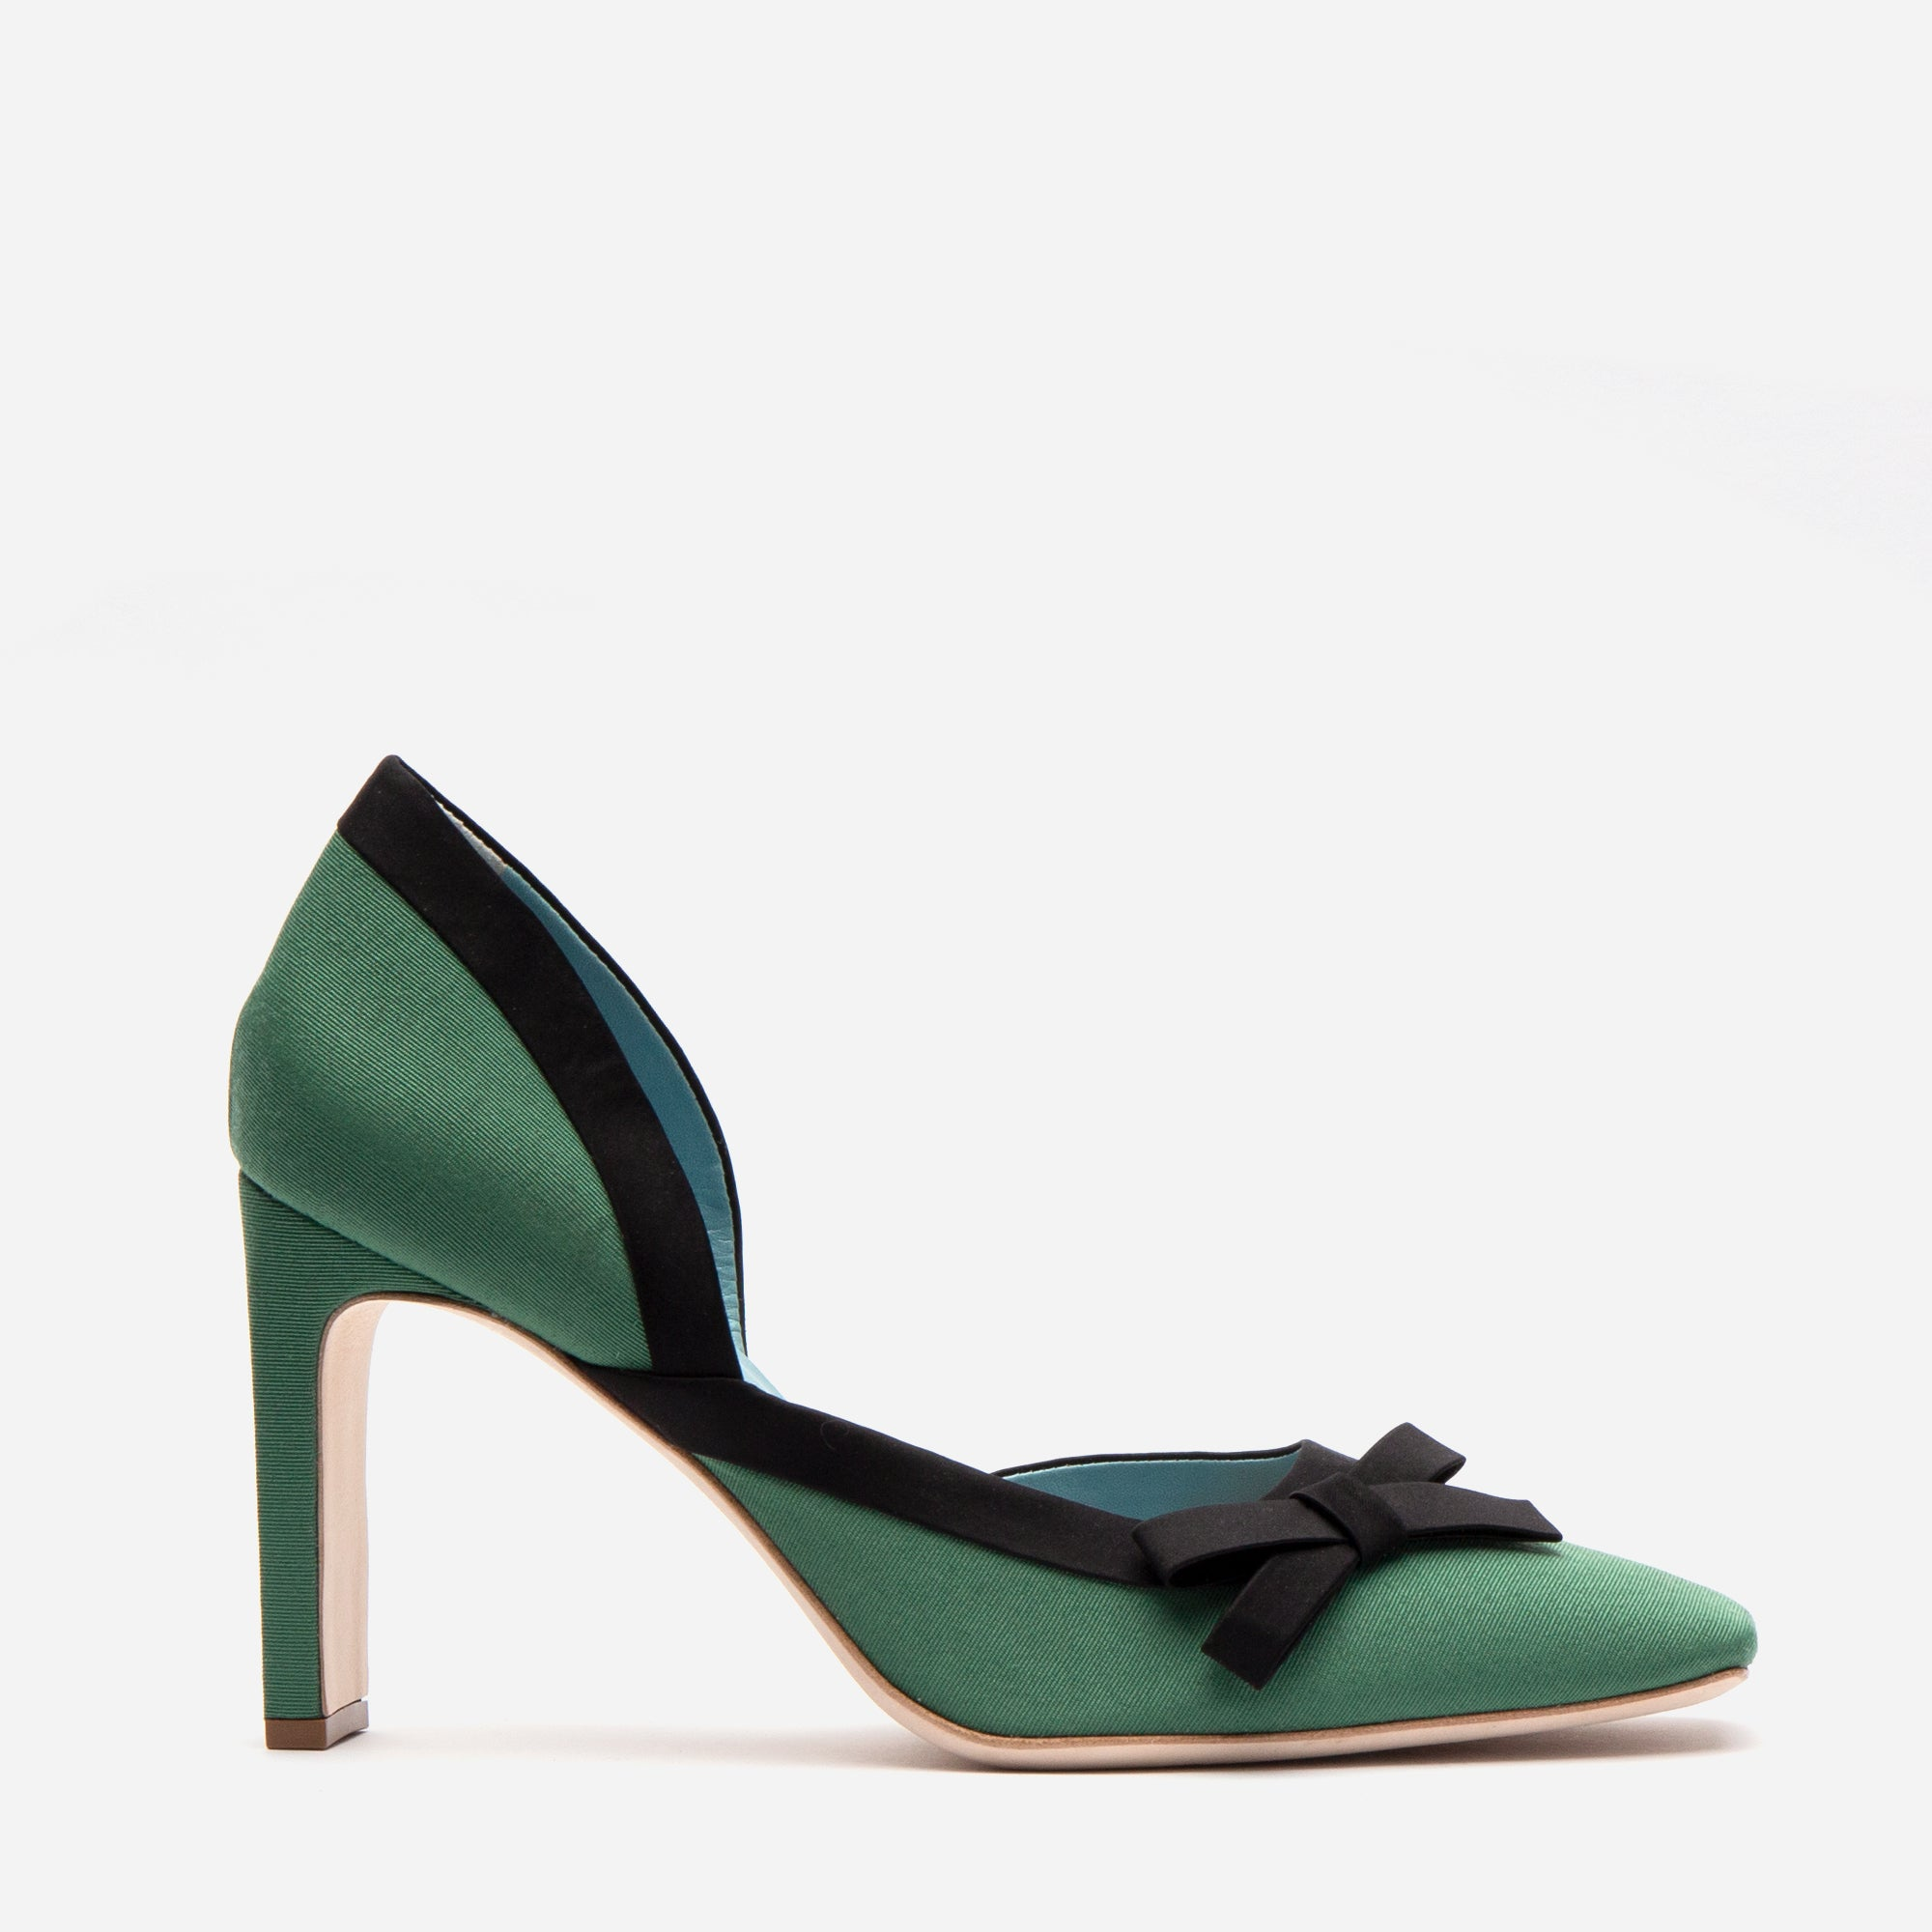 Sinclair Grosgrain Satin Heels Emerald Black *FINAL SALE*